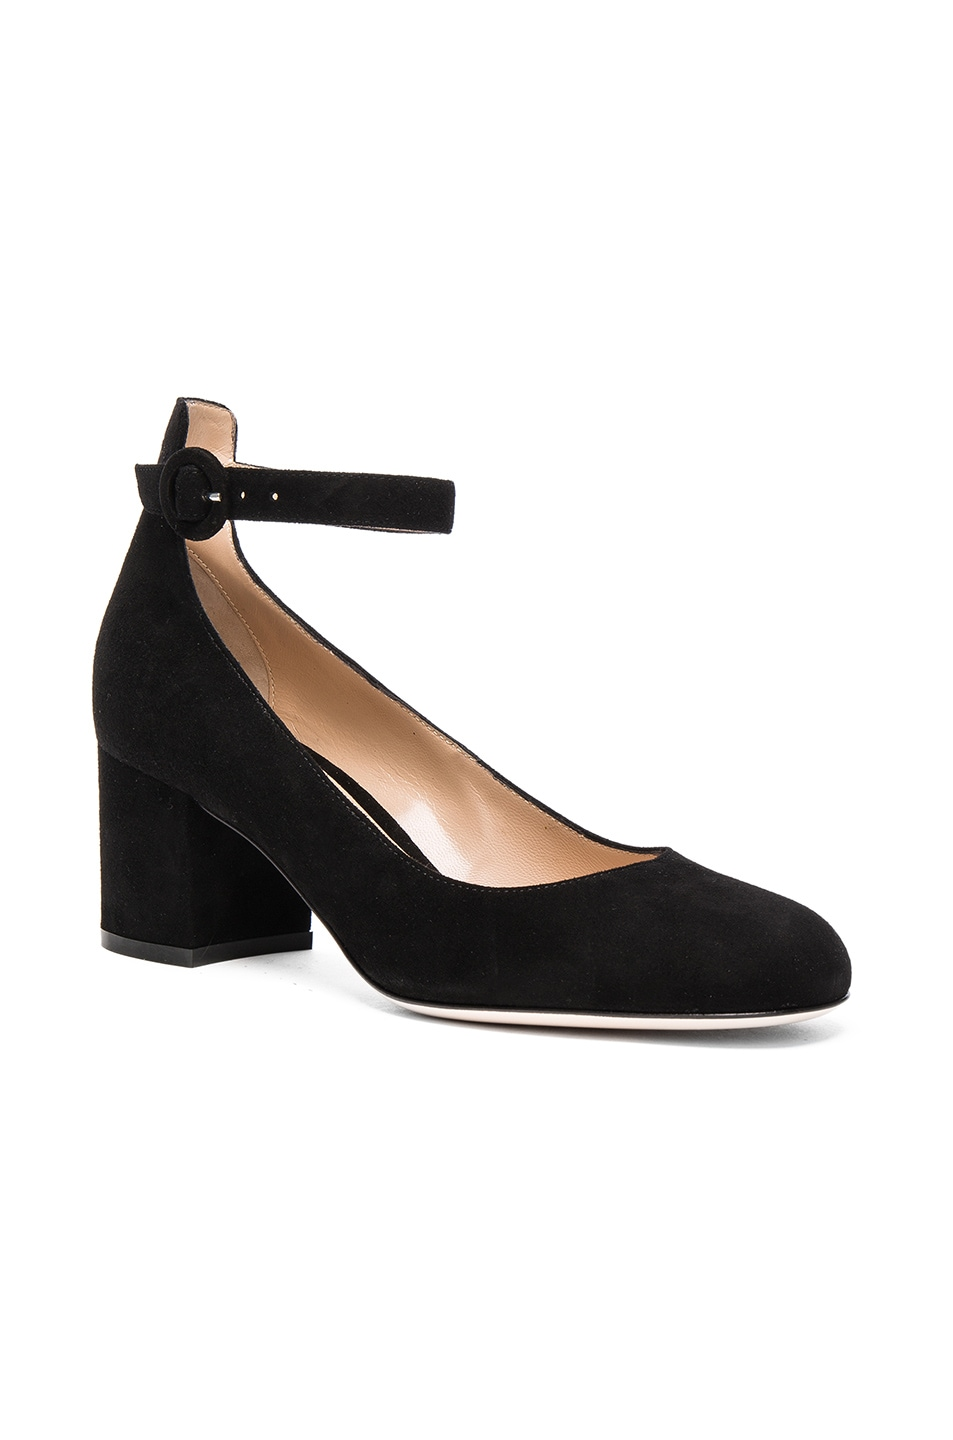 Image 2 of Gianvito Rossi Suede Ankle Strap Flats in Black